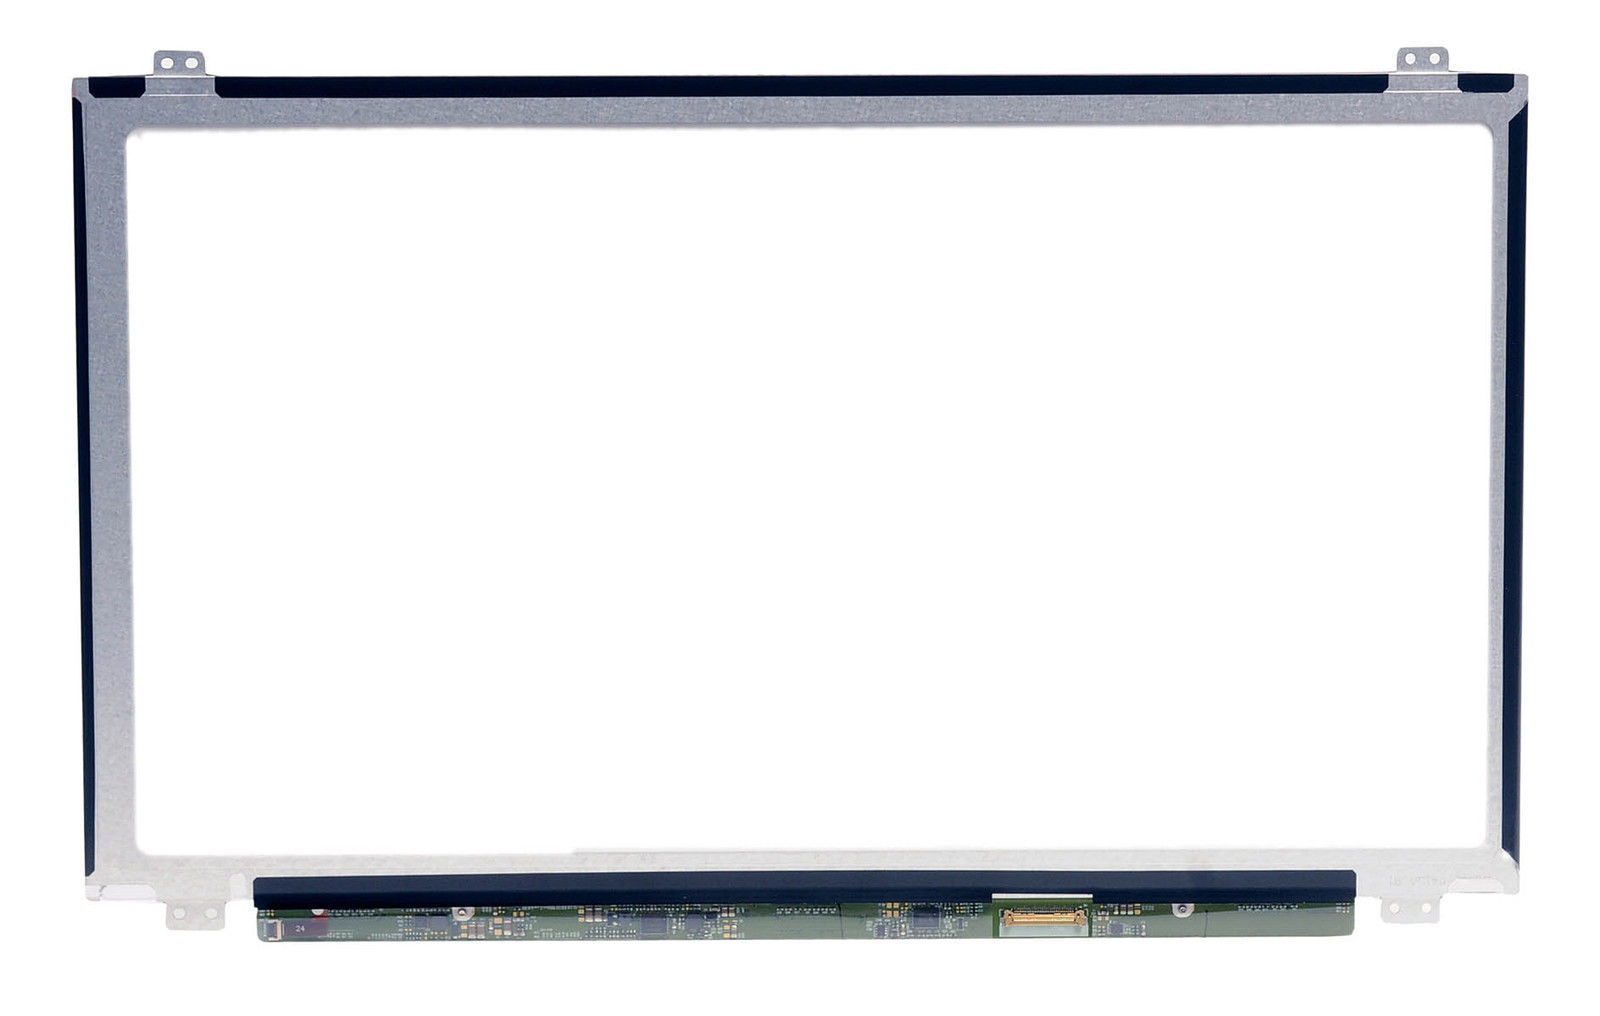 For Lenovo G50-30 G50-45 G50-70 G50-80 New Replacement LCD Screen for Laptop LED HD laptop new led lcd screen hd glossy for lenovo thinkpad g50 70 lp156wh3 tp sh